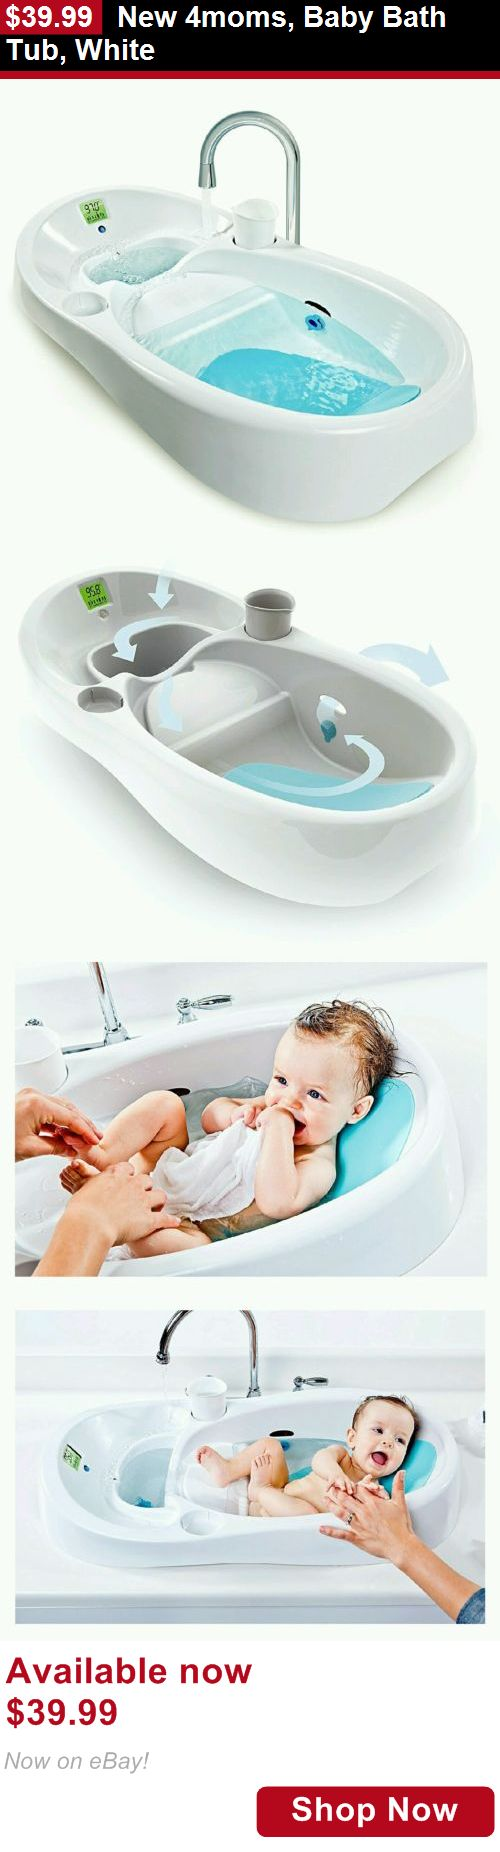 Baby Bath Tubs: New 4Moms, Baby Bath Tub, White BUY IT NOW ONLY: $39.99